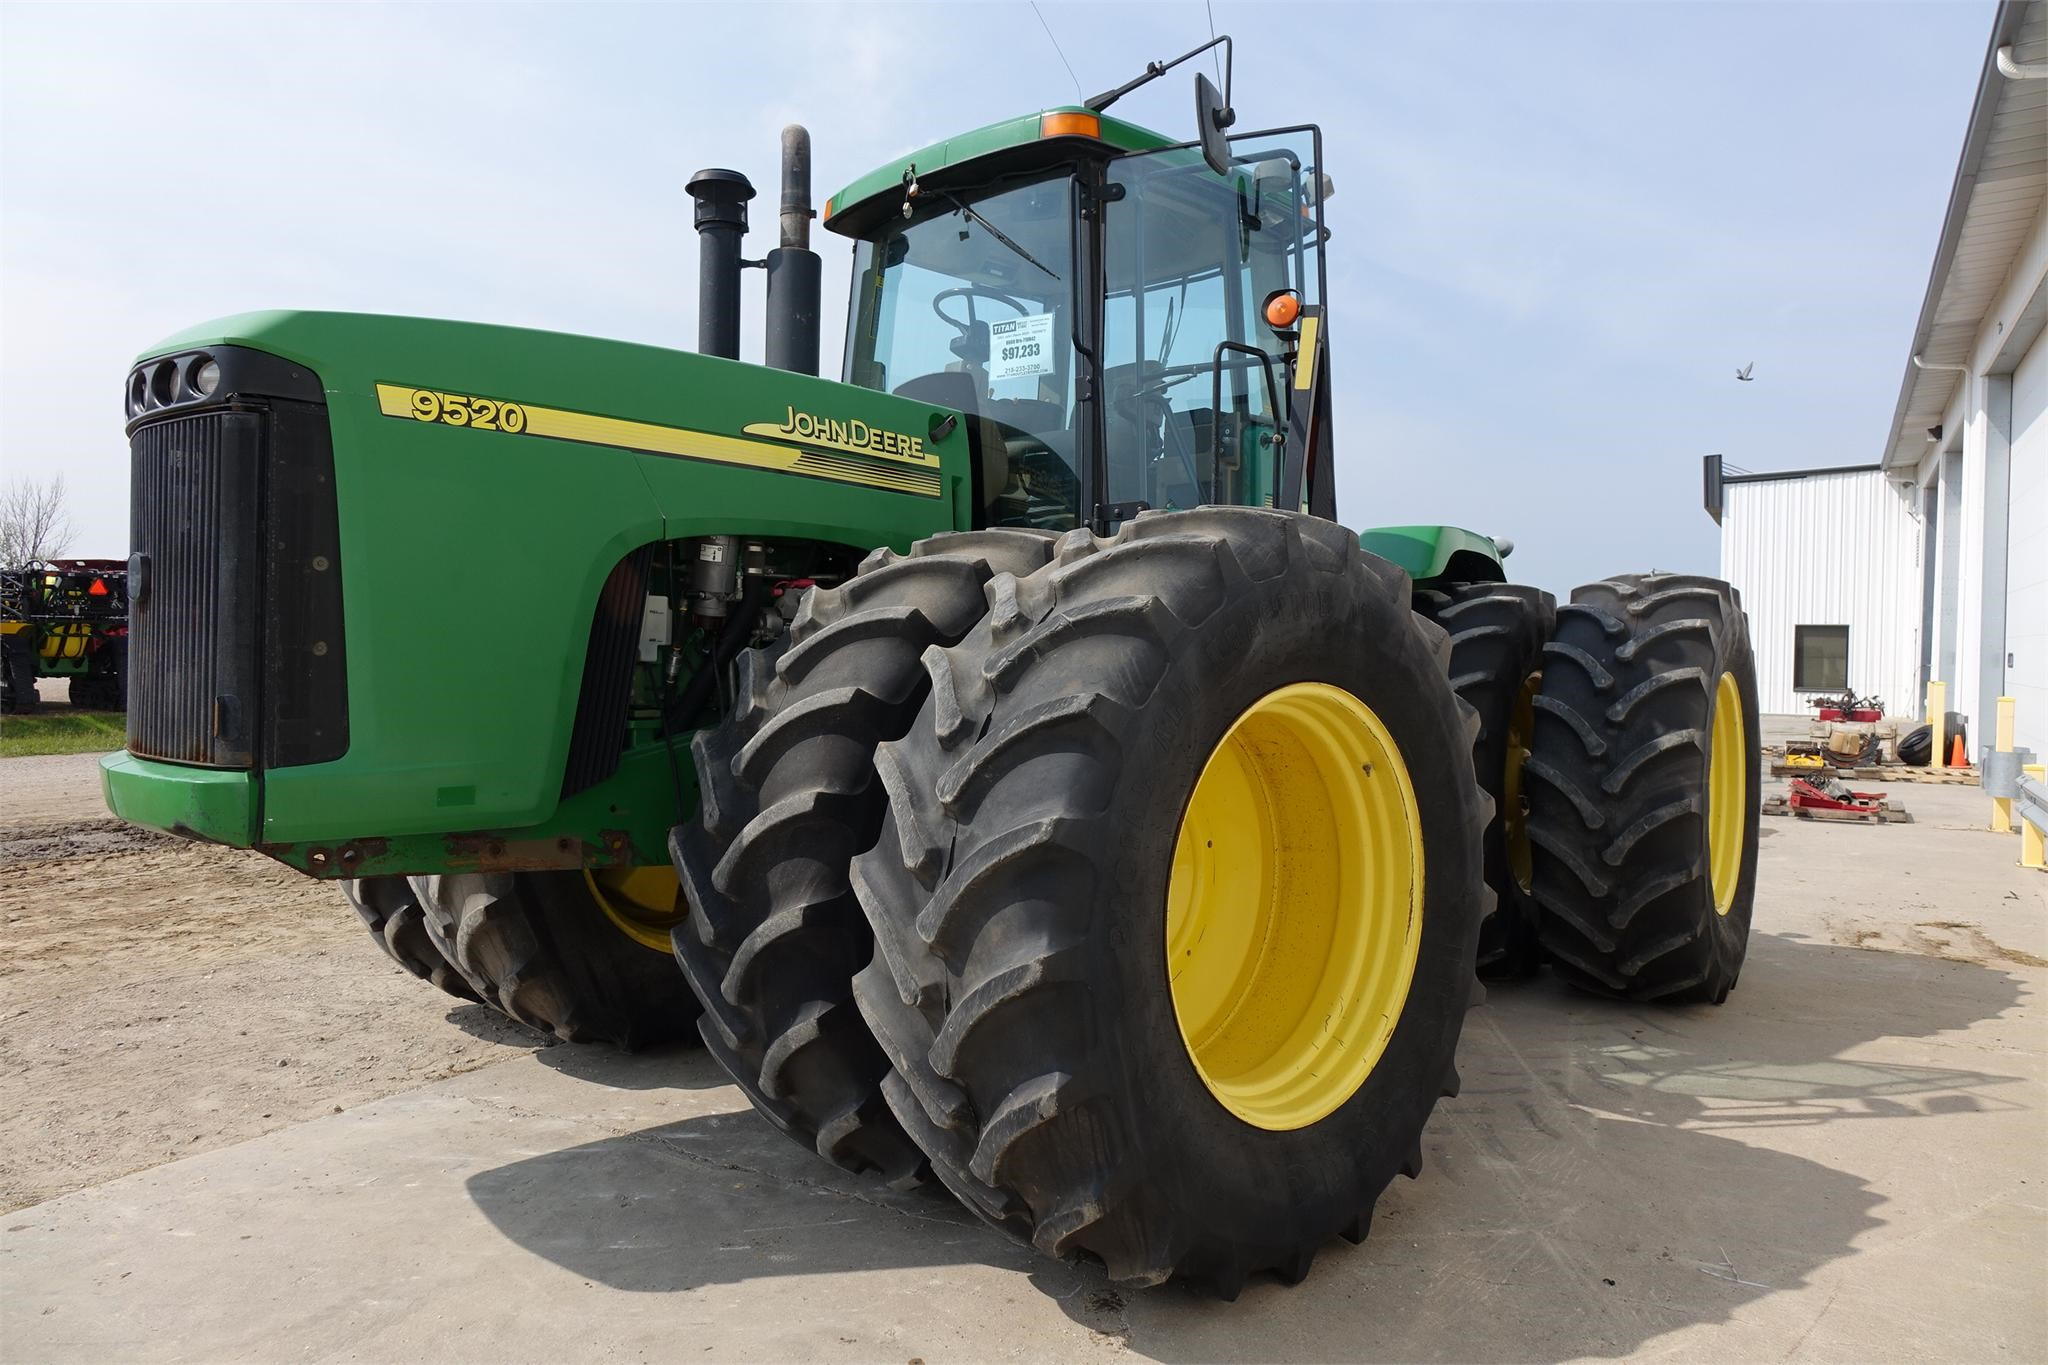 Wisconsin Ag Connection - JOHN DEERE 9520 Tractors for sale